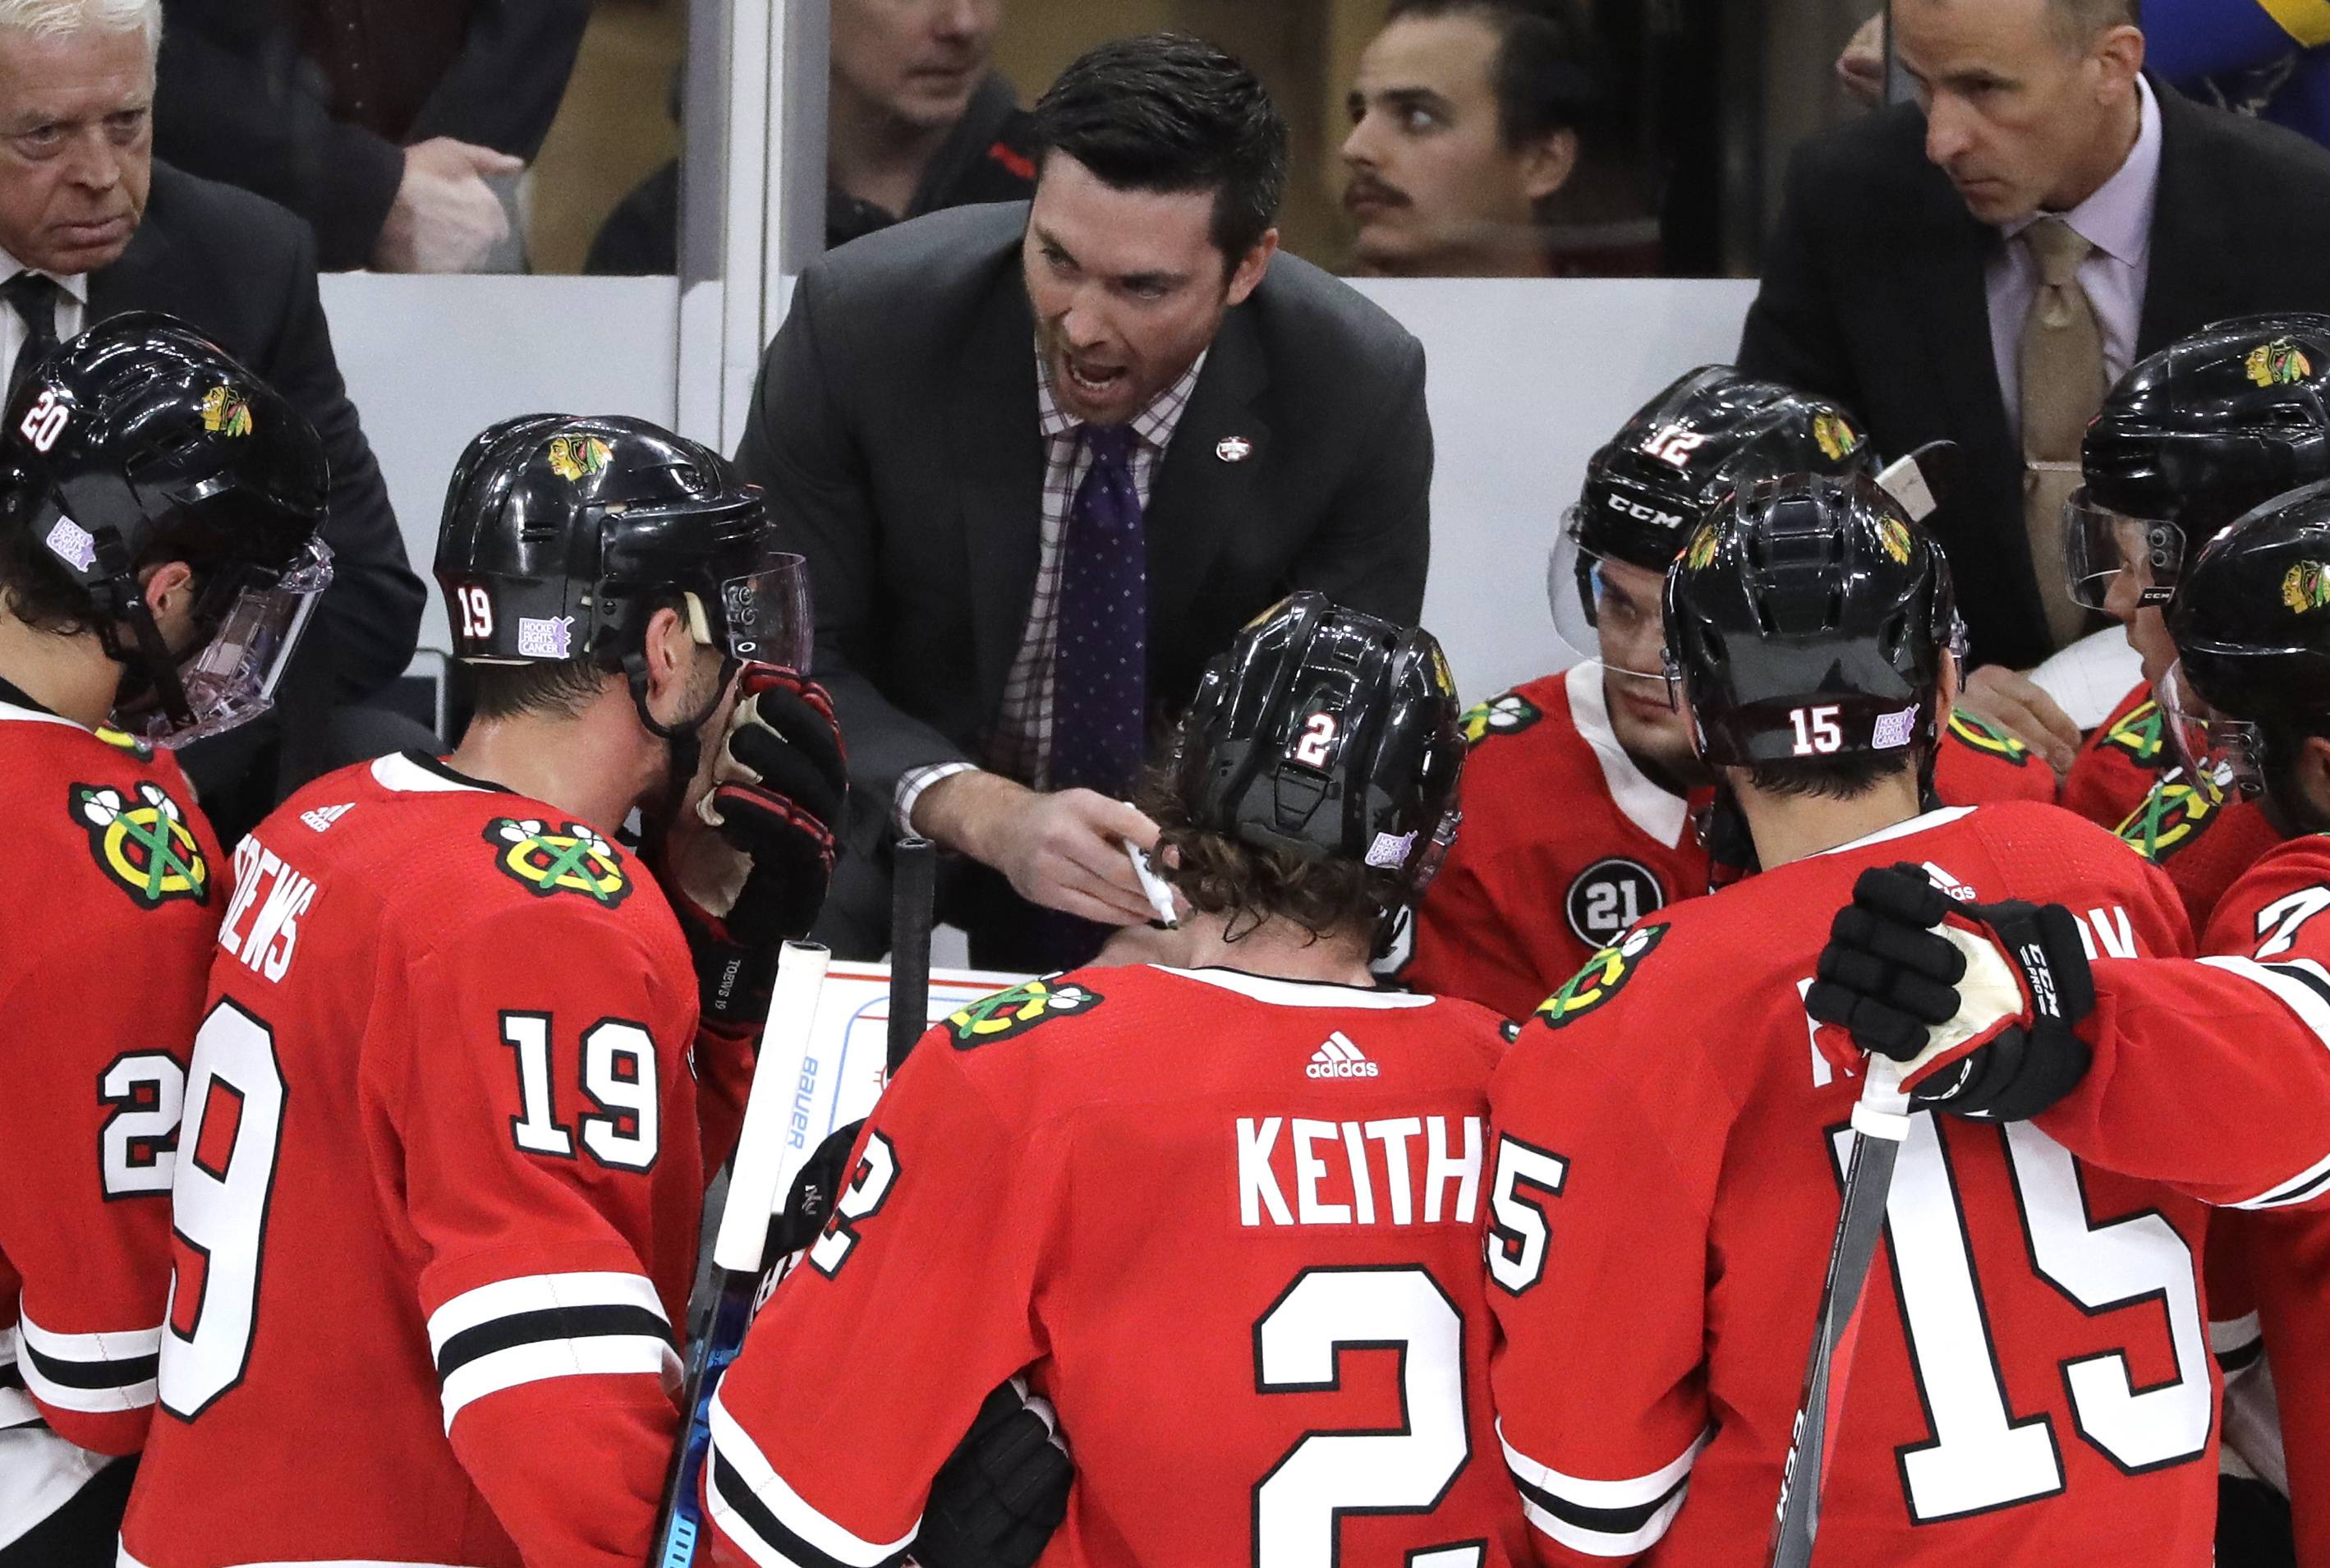 Chicago Blackhawks coach Jeremy Colliton, center, talks to his team during the third period of an NHL hockey game against the St. Louis Blues, Wednesday, Nov. 14, 2018, in Chicago. The Blackhawks won 1-0. (AP Photo/Nam Y. Huh)